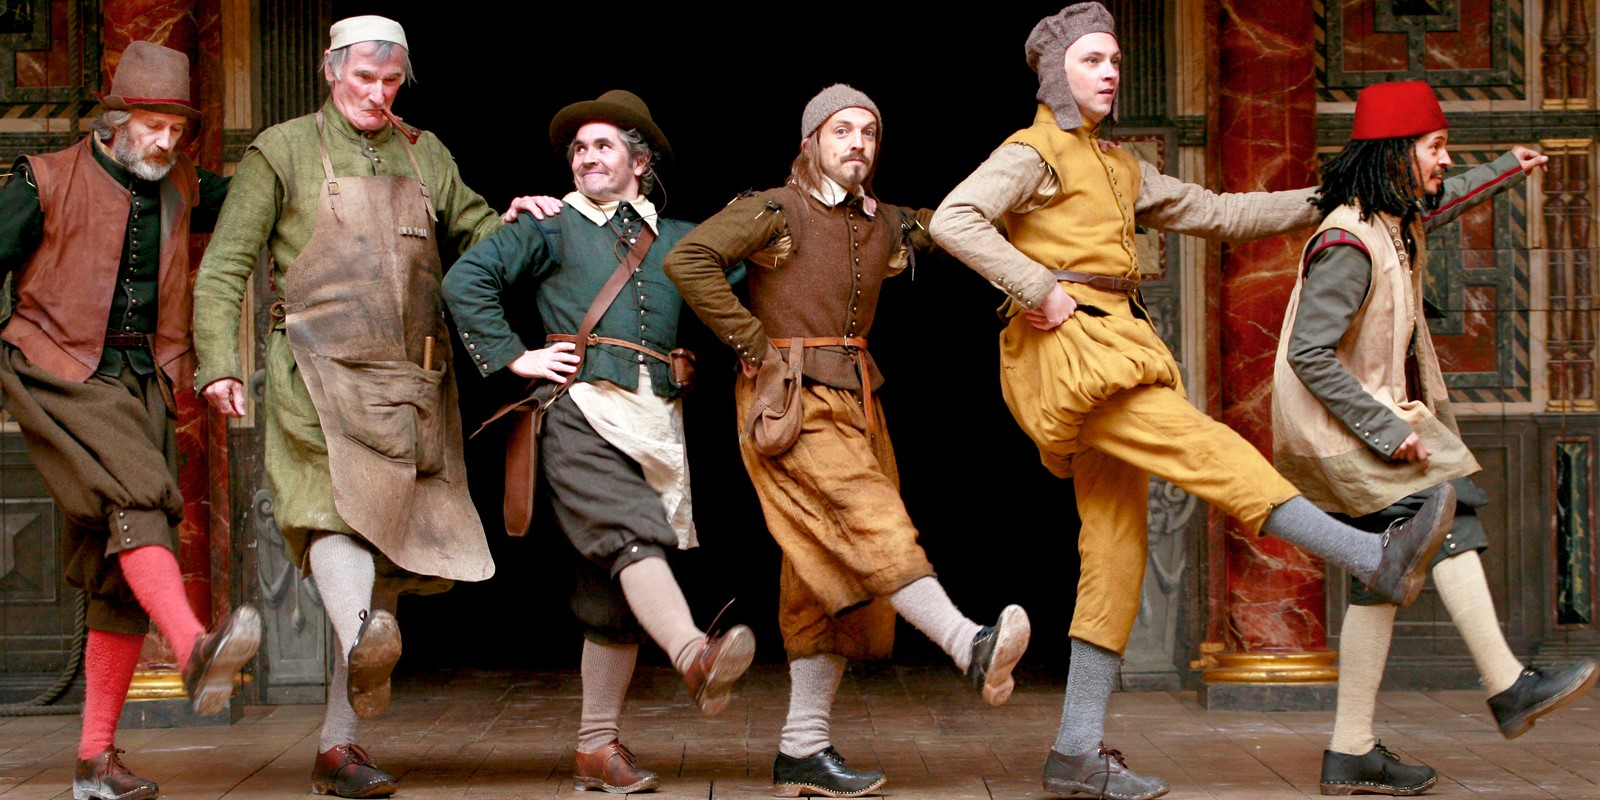 [IMAGE] The Mechanicals from the Globe's 2014 production of A Midsummer Night's Dream